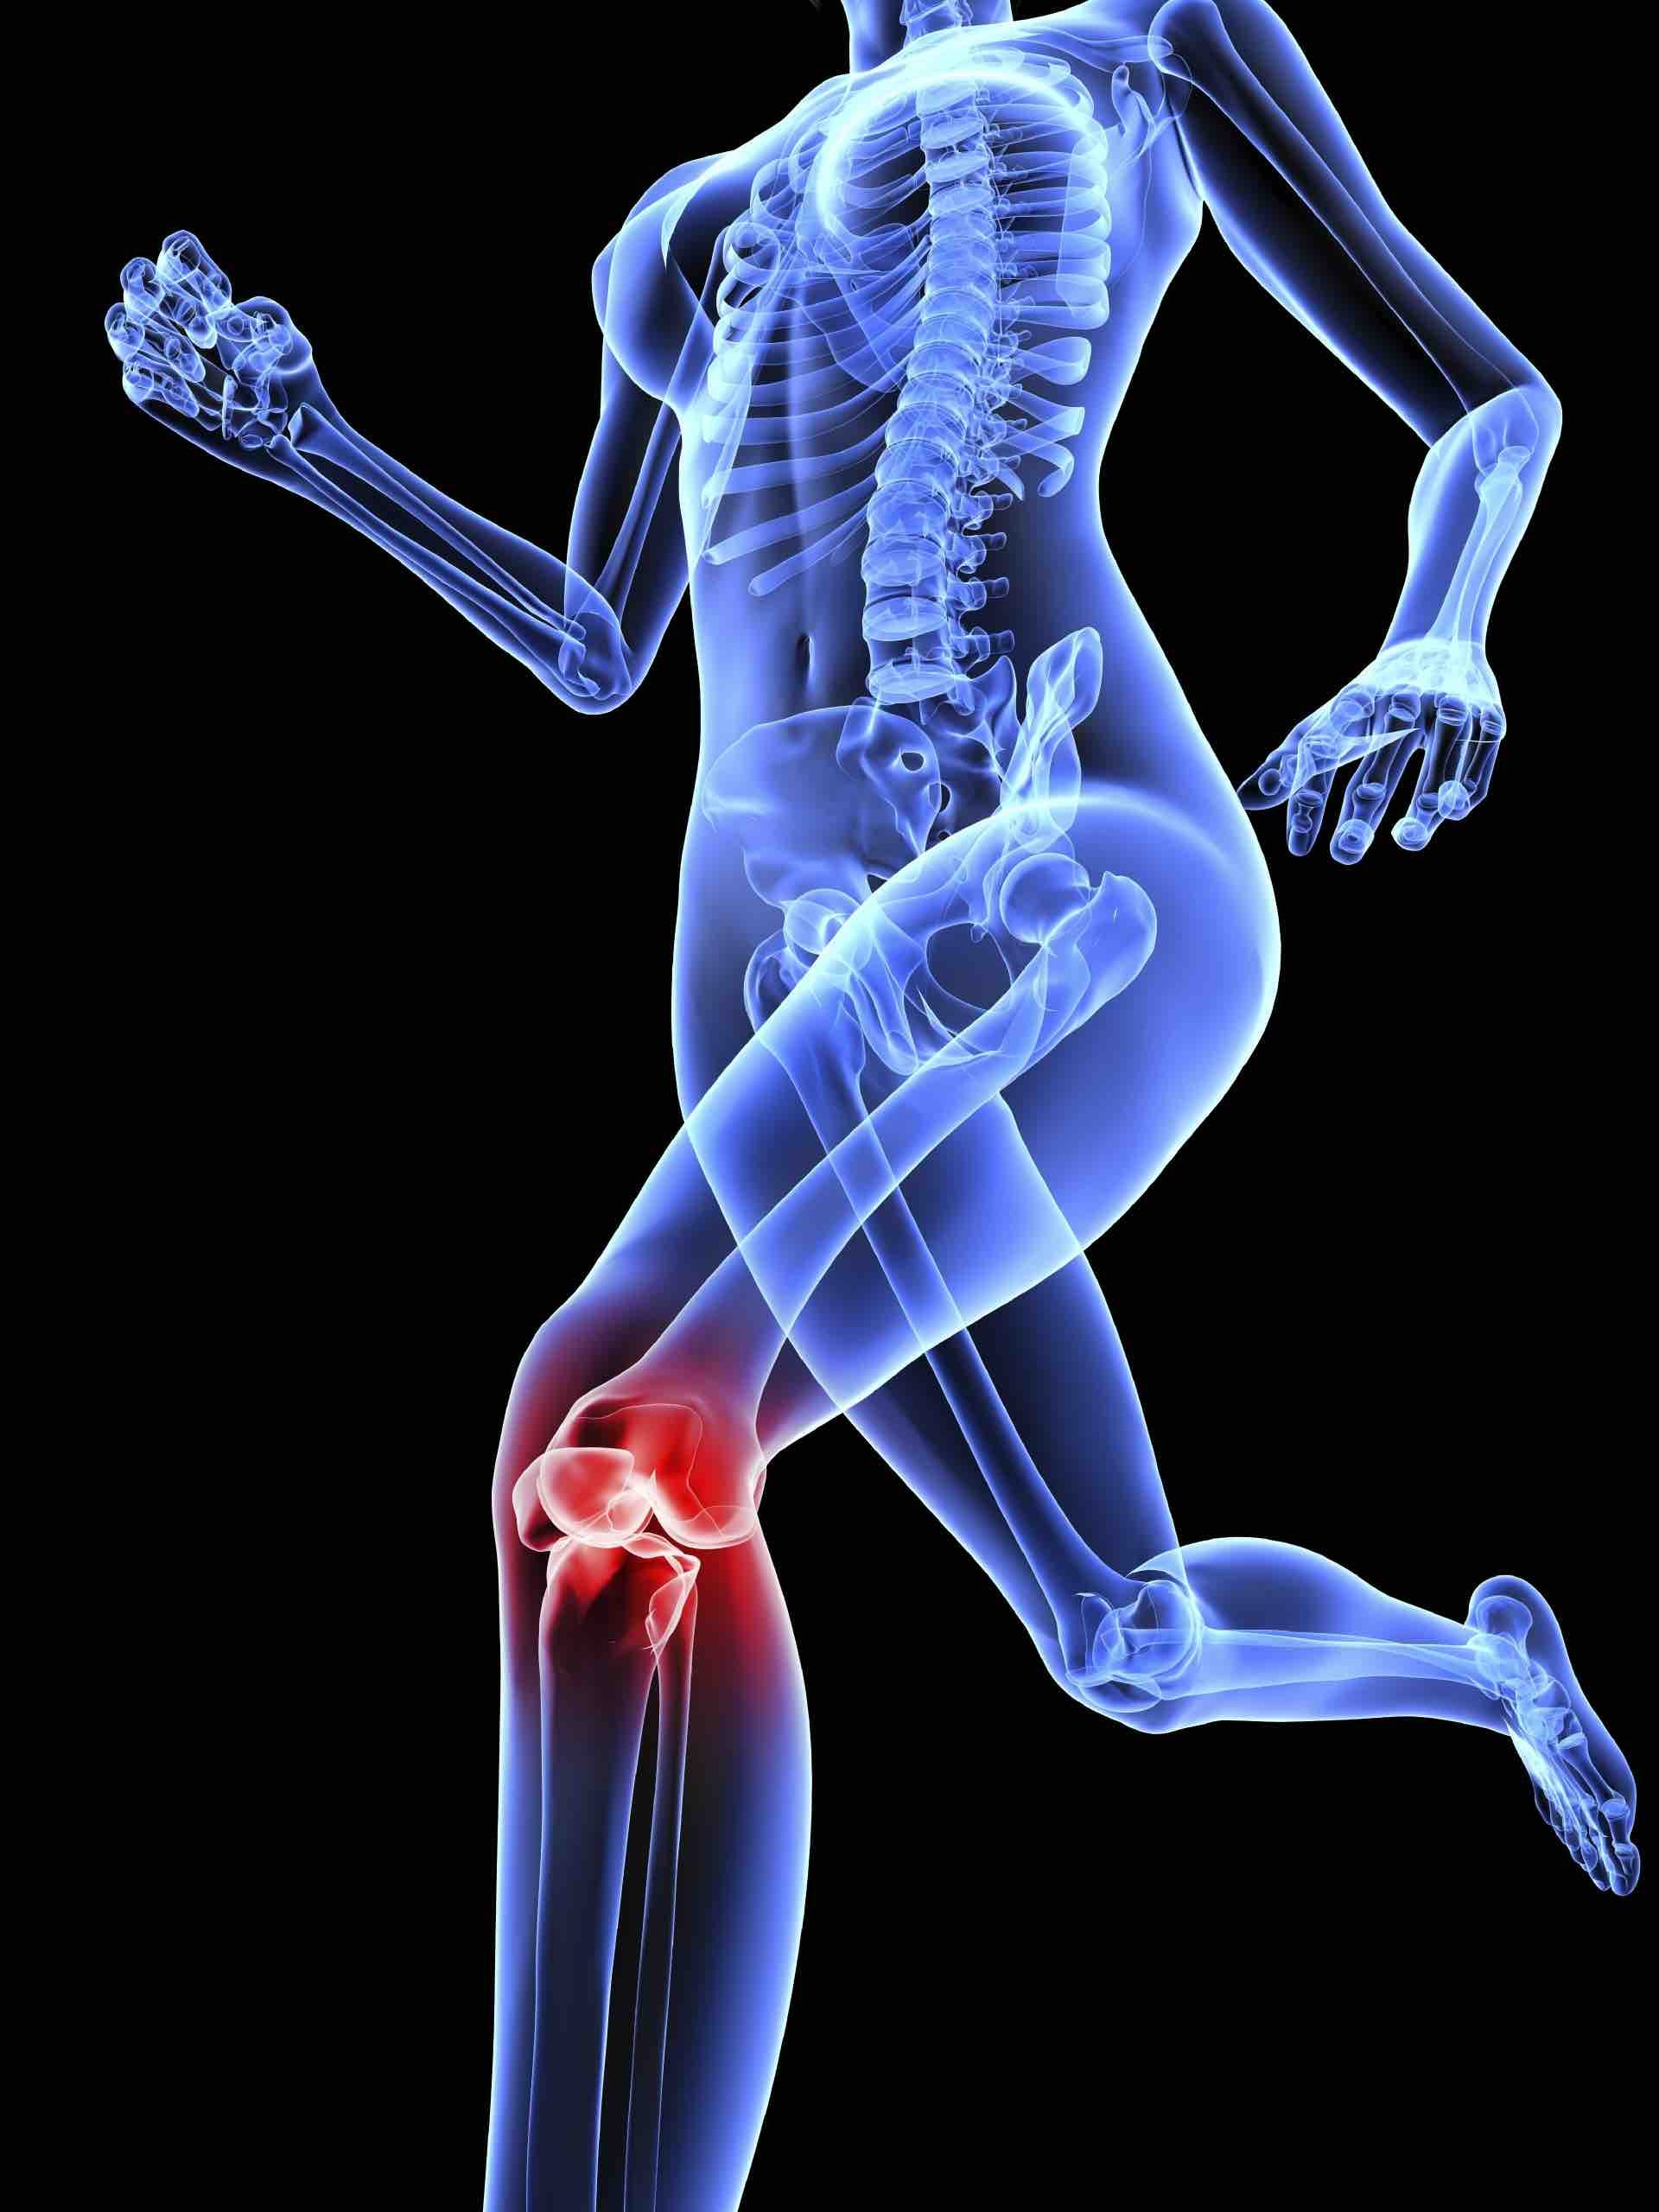 Using Sesame Seeds is Superior to Tylenol for Knee Arthritis